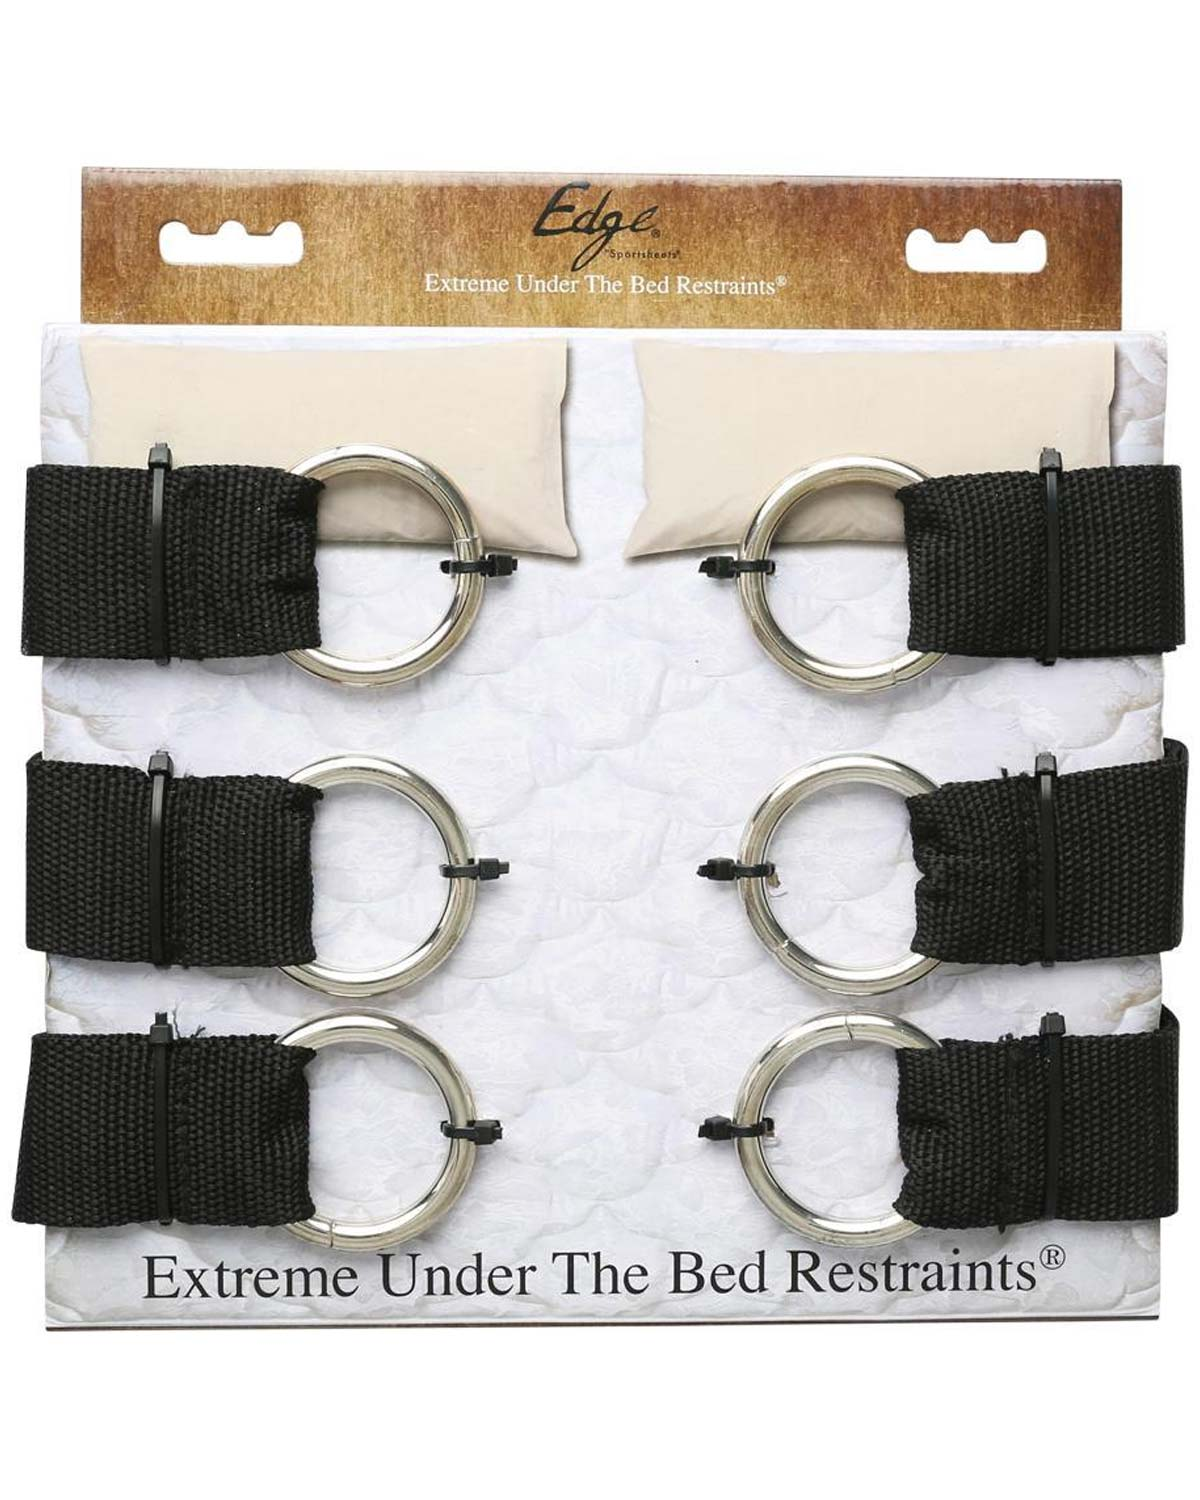 Edge Xtreme Under The Bed Restraints